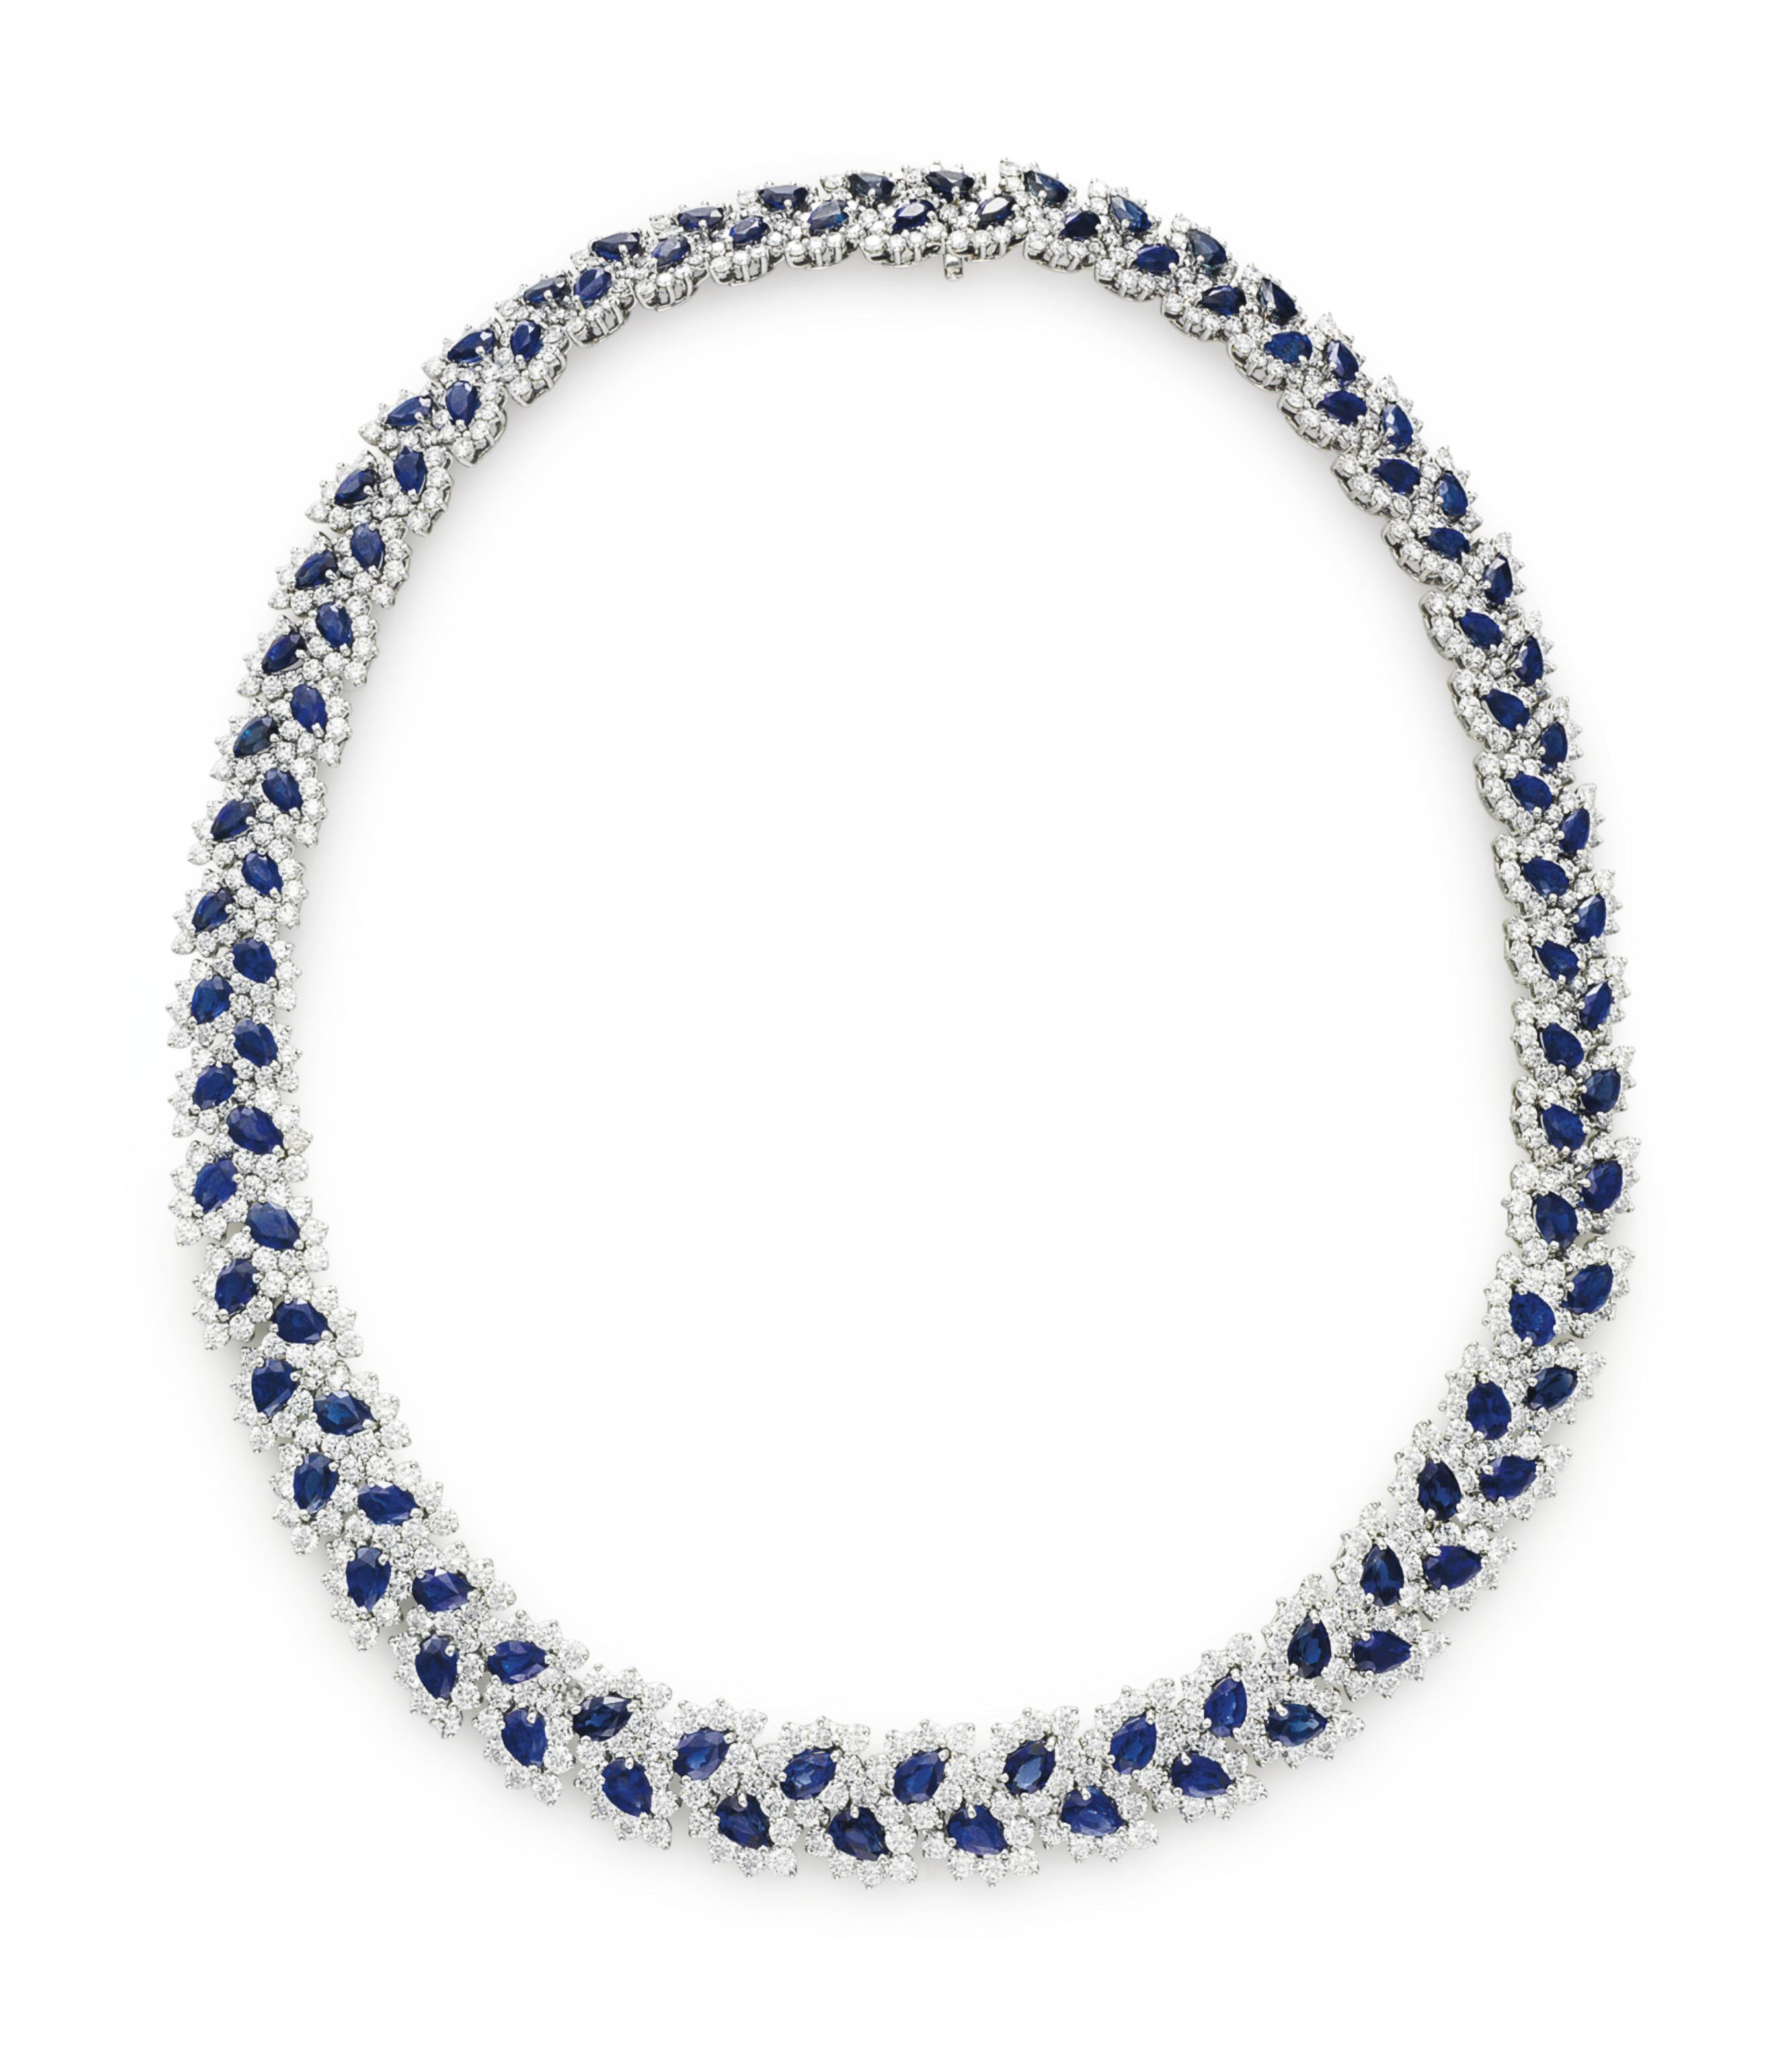 881be456d54b6 A SAPPHIRE AND DIAMOND 'LEAF' NECKLACE, BY TIFFANY & CO. | Jewelry ...